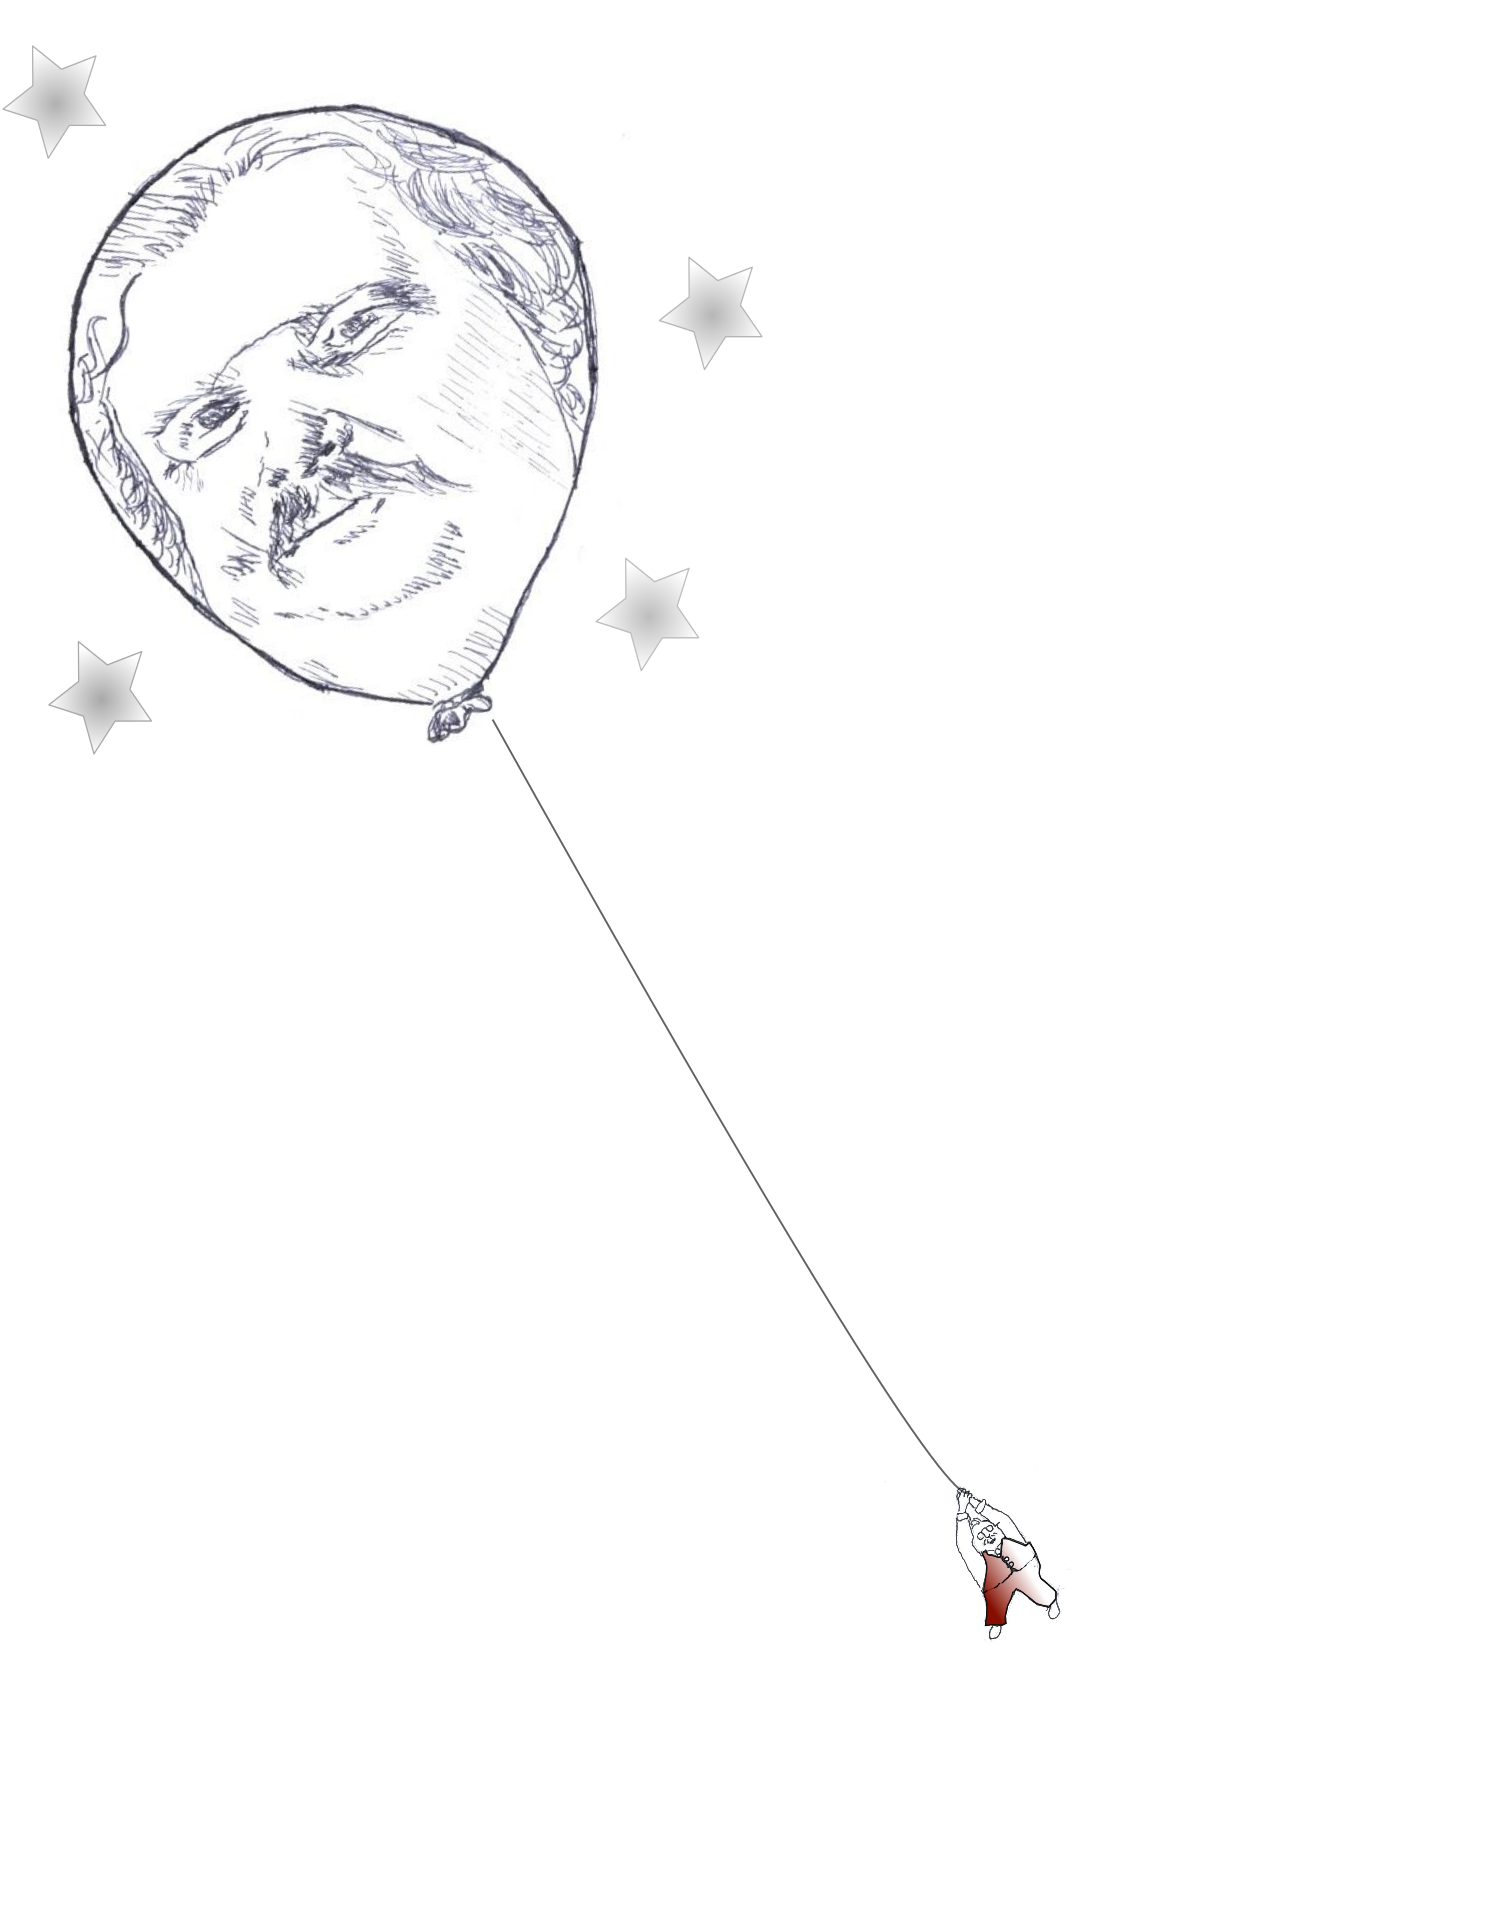 Illustration of Chesterton hanging onto a balloon that looks like his face